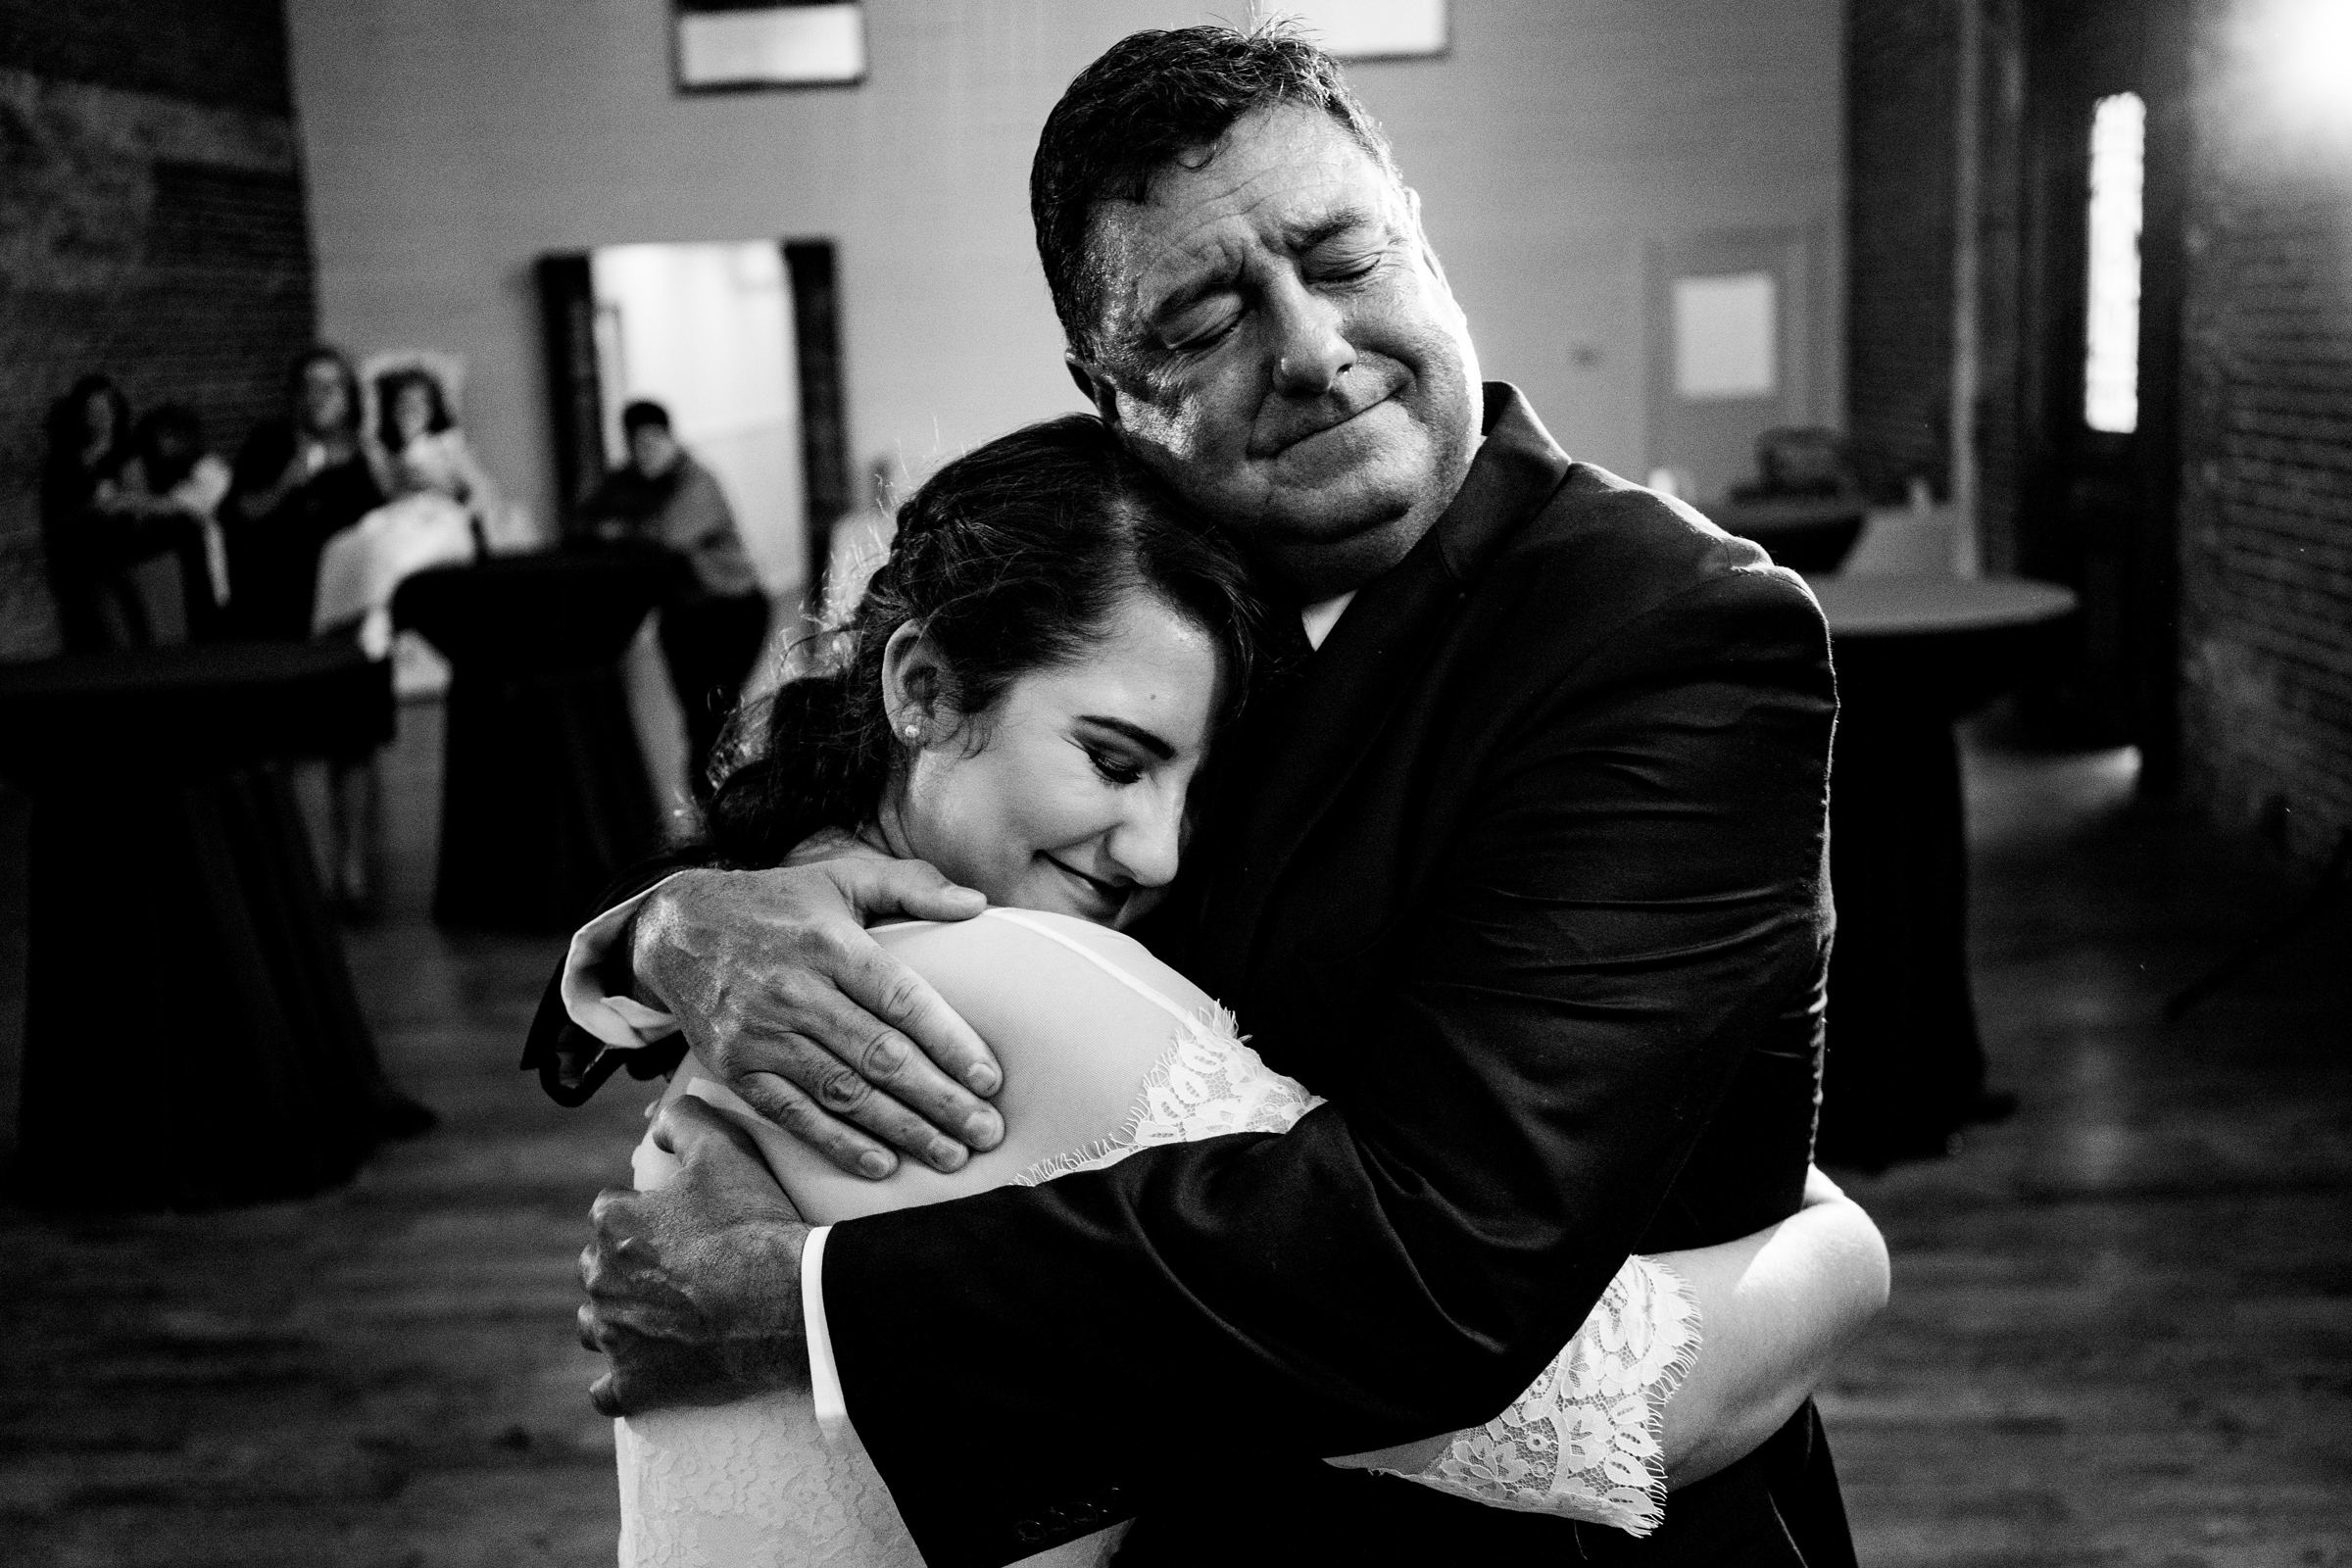 bride and dad in  a sweet emotional hug-Arkansas photographer- photo by Vinson Images